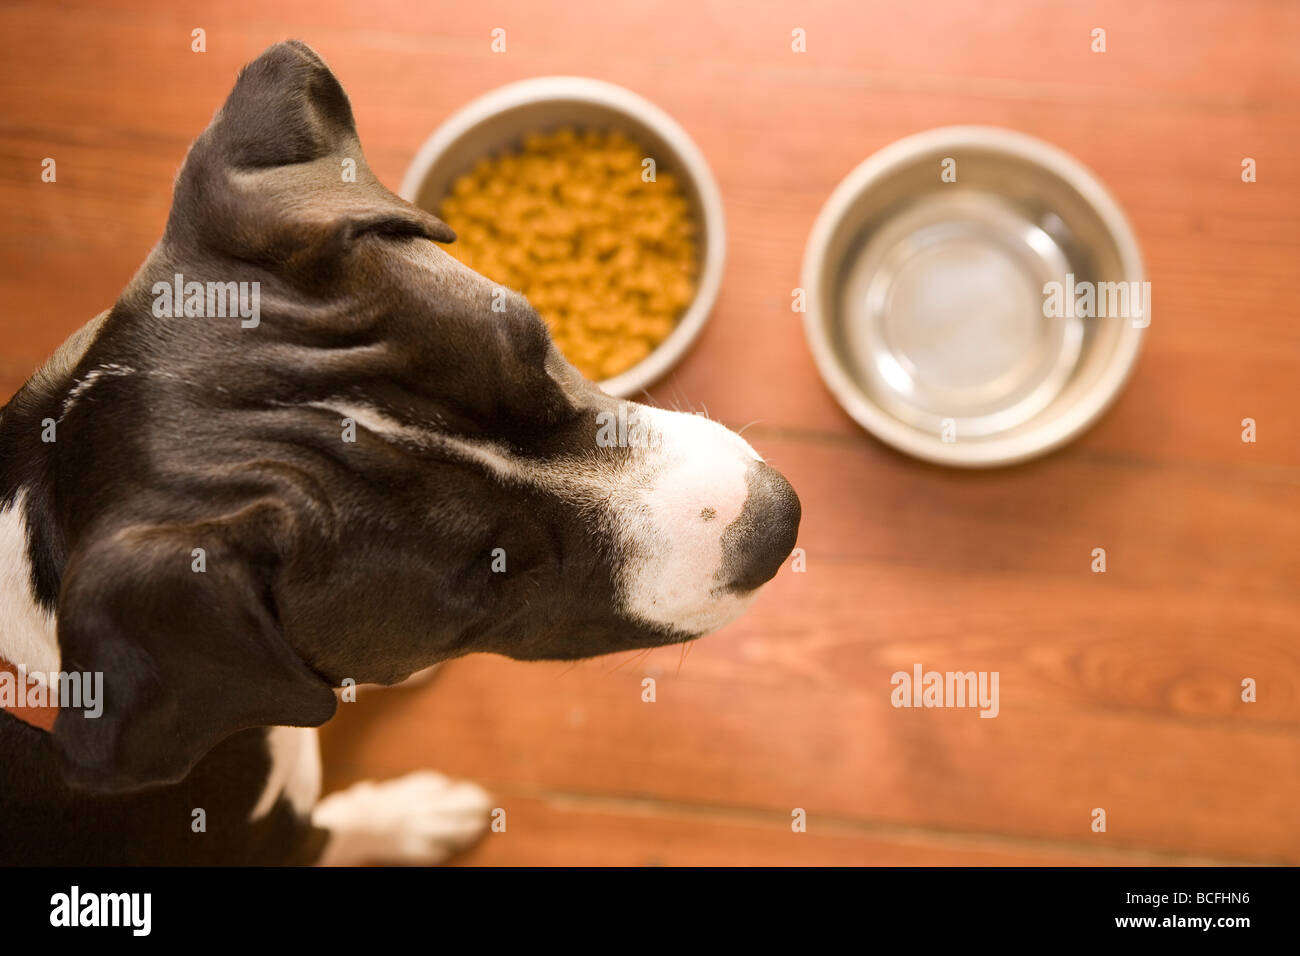 close up of a dog's head looking away from her food dishes, not interested in what is offered - Stock Image